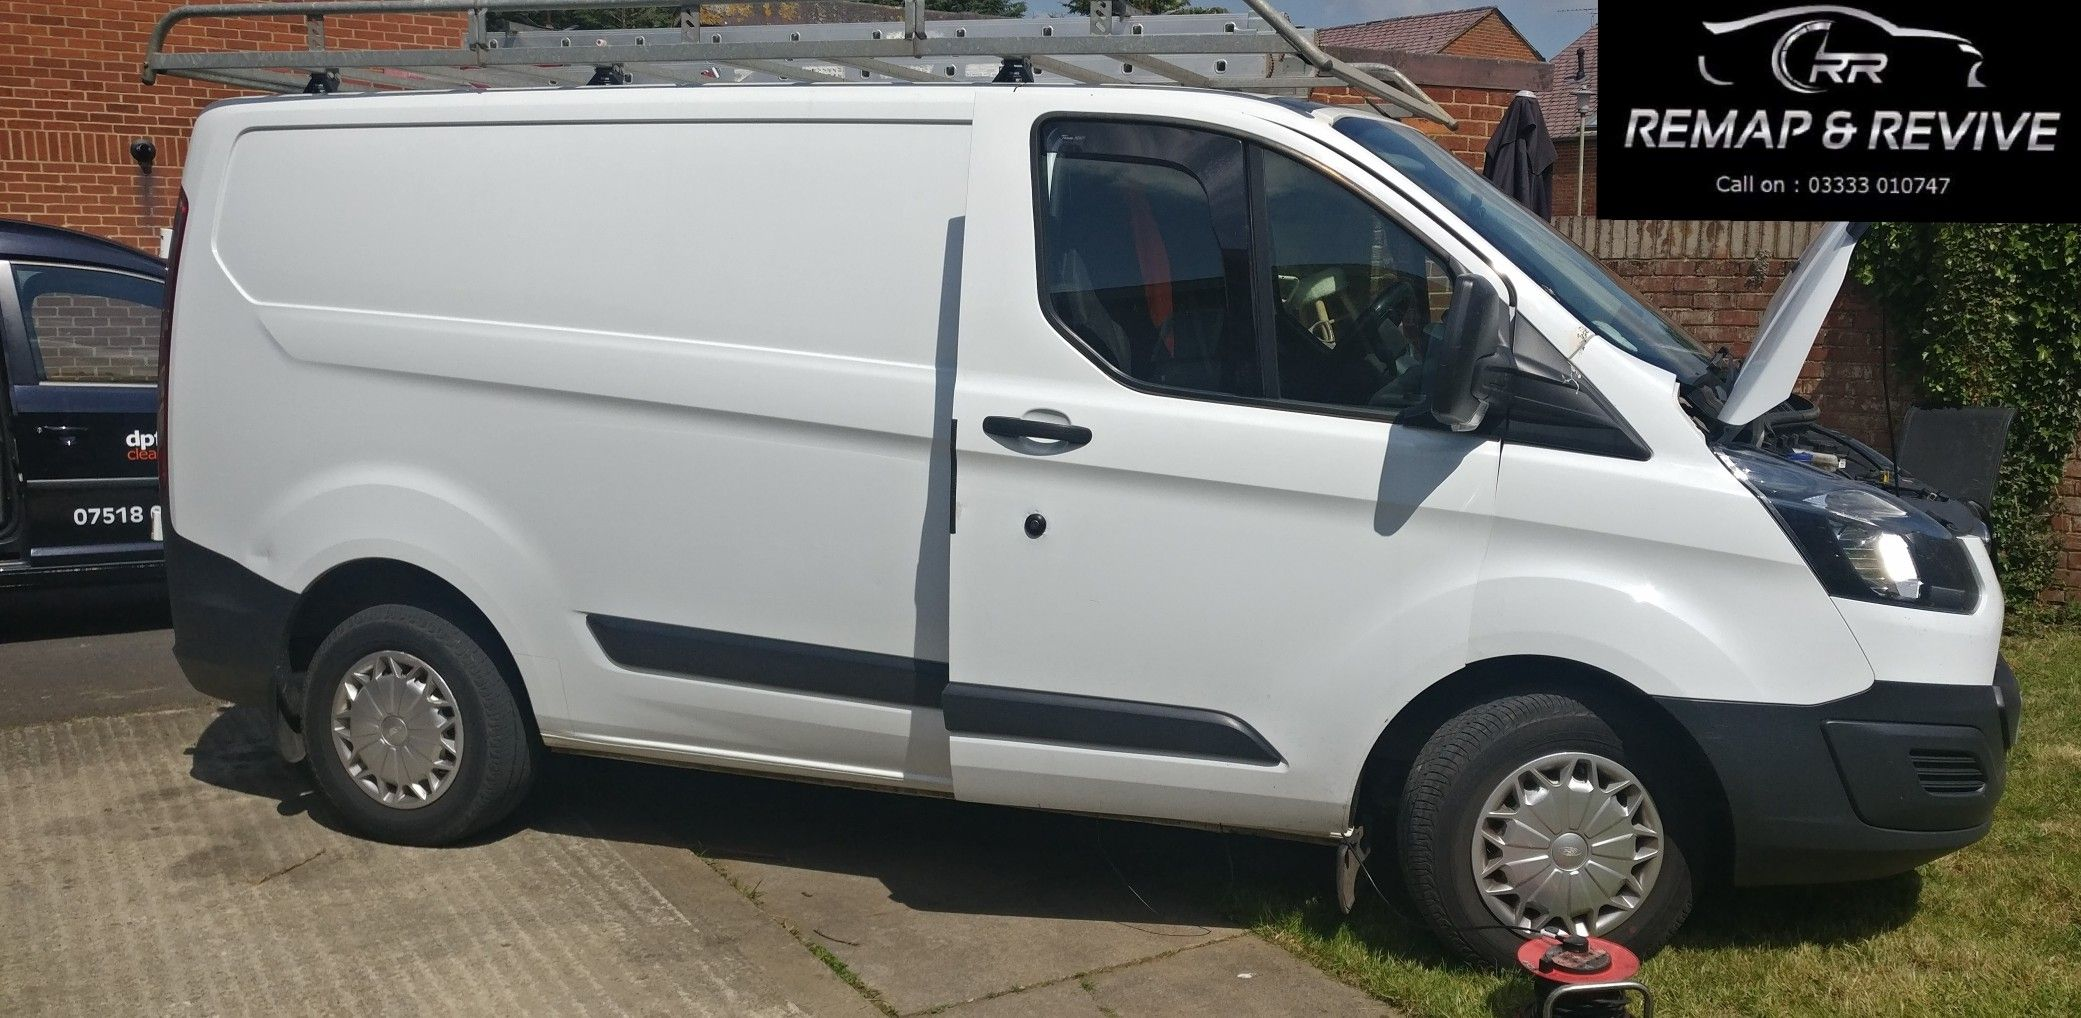 One Of Several Messes Made By Other Garages Remappers We Have Sorted Out This Week This Was Left In A State Of Transit Custom Ford Transit Custom